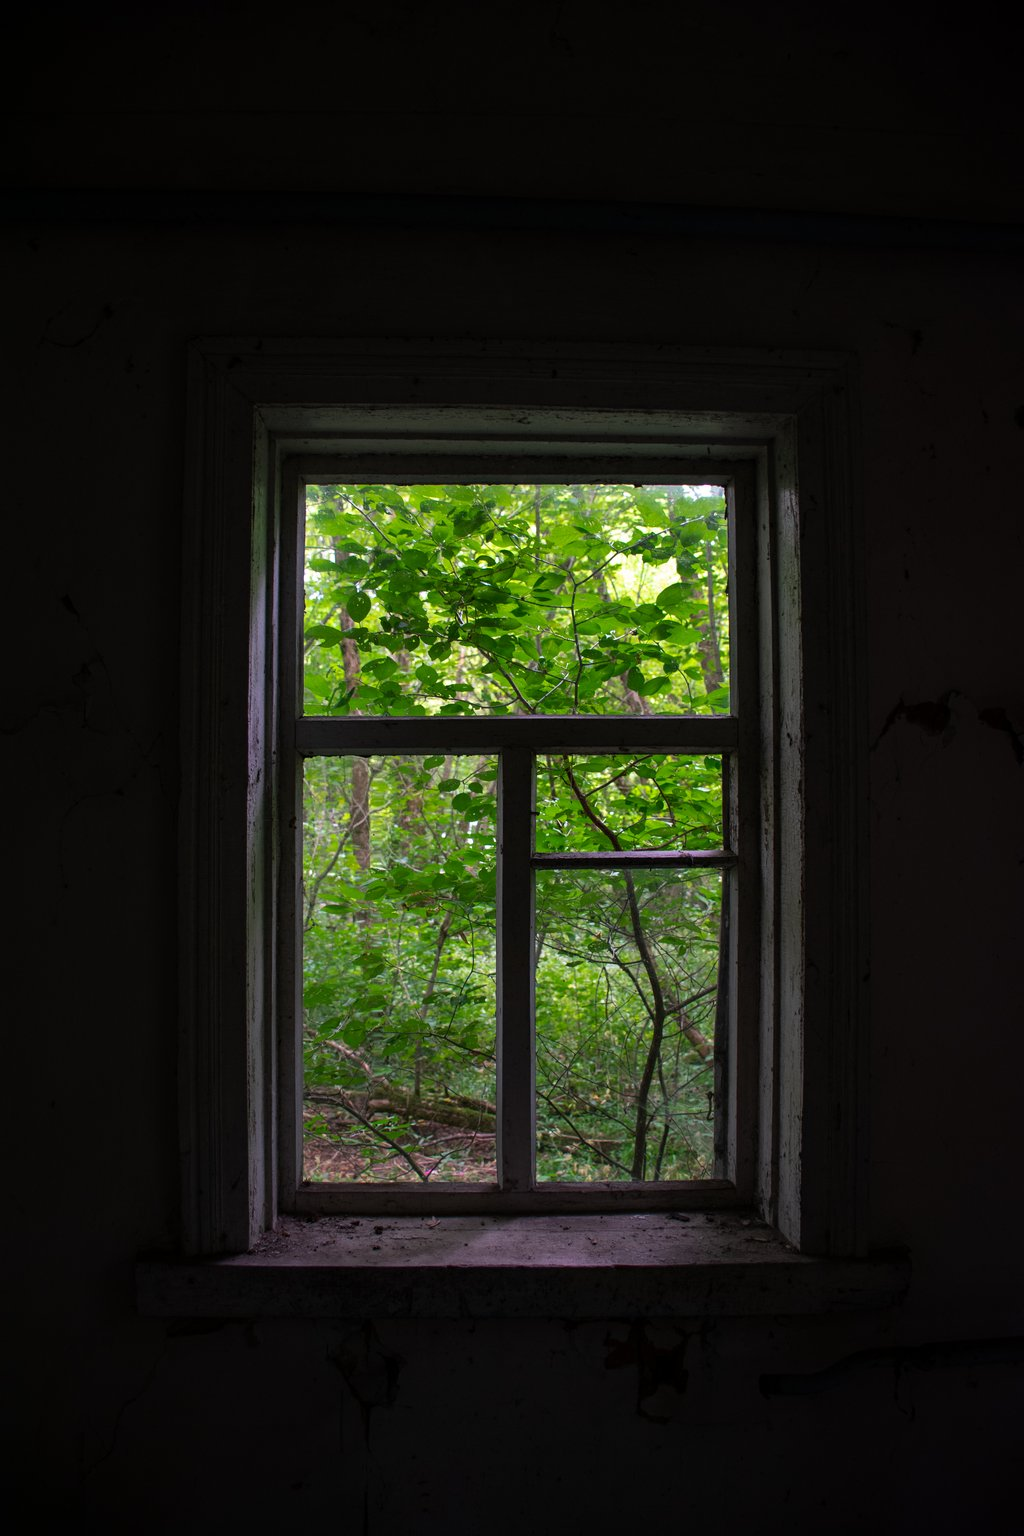 "<img src=""window.png"" alt=""window with a view to the wilderness of chernobyl"">"